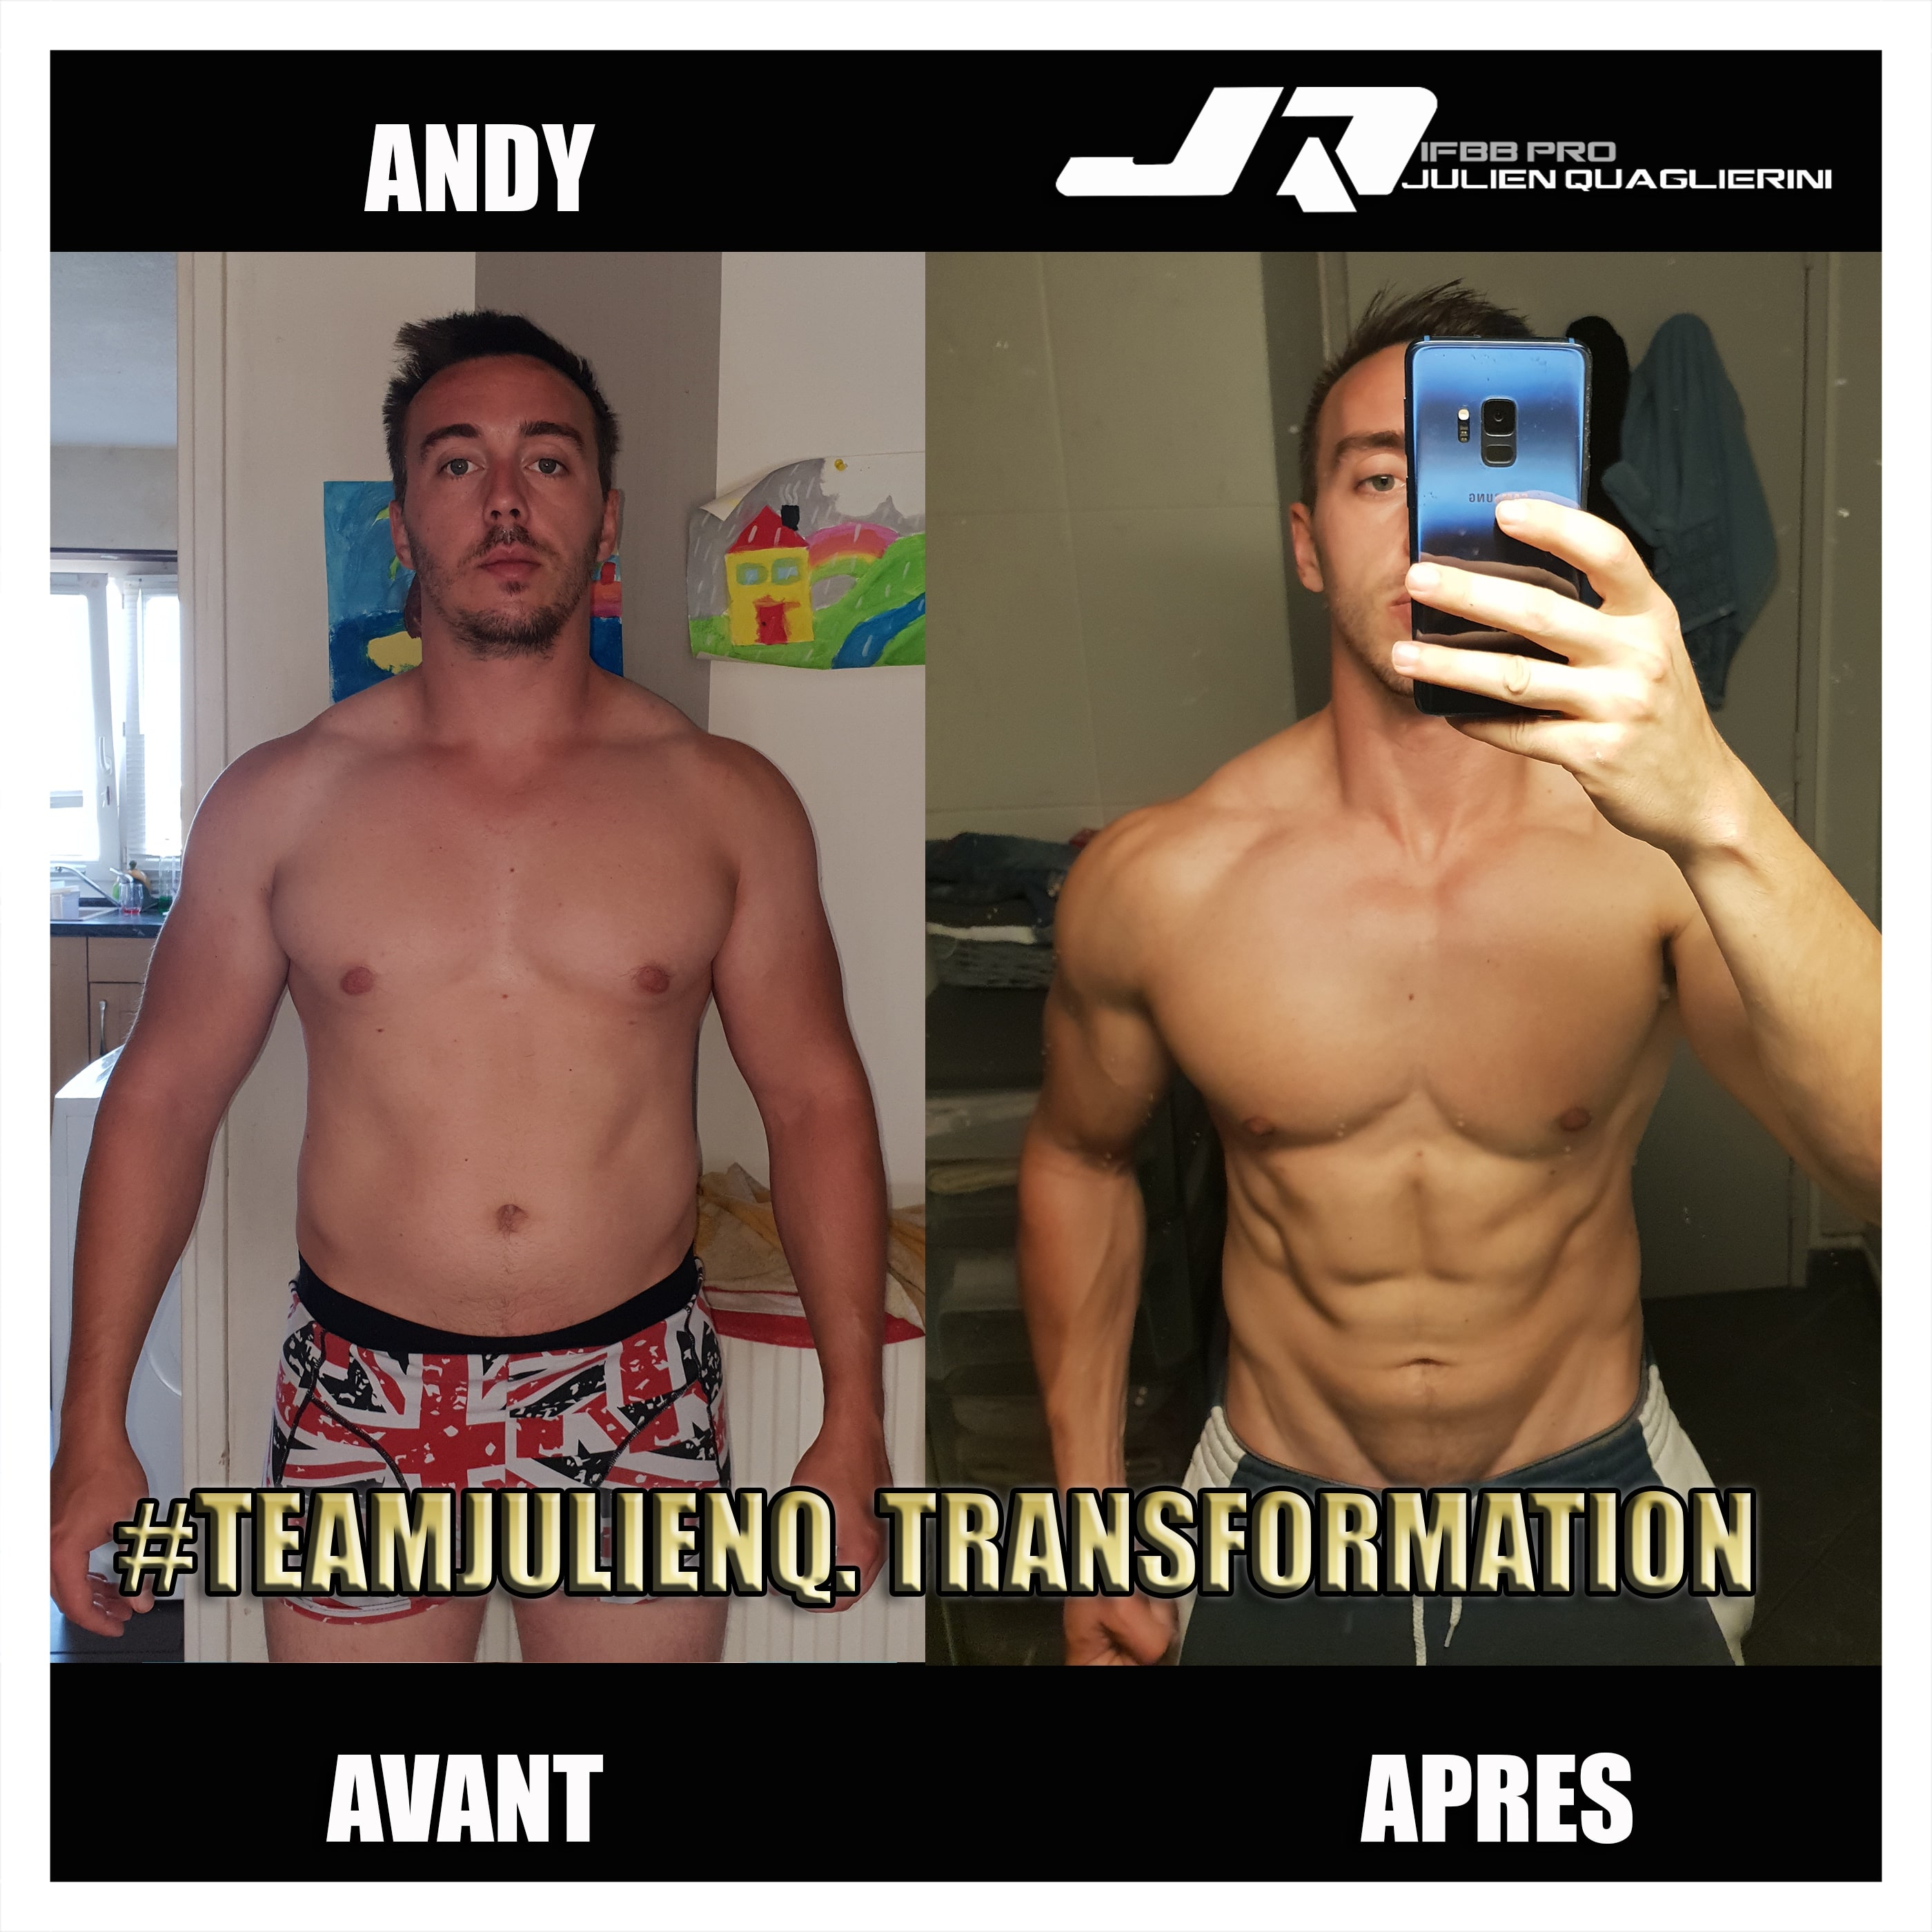 ANDY TRANSFORMATION MUSCULATION